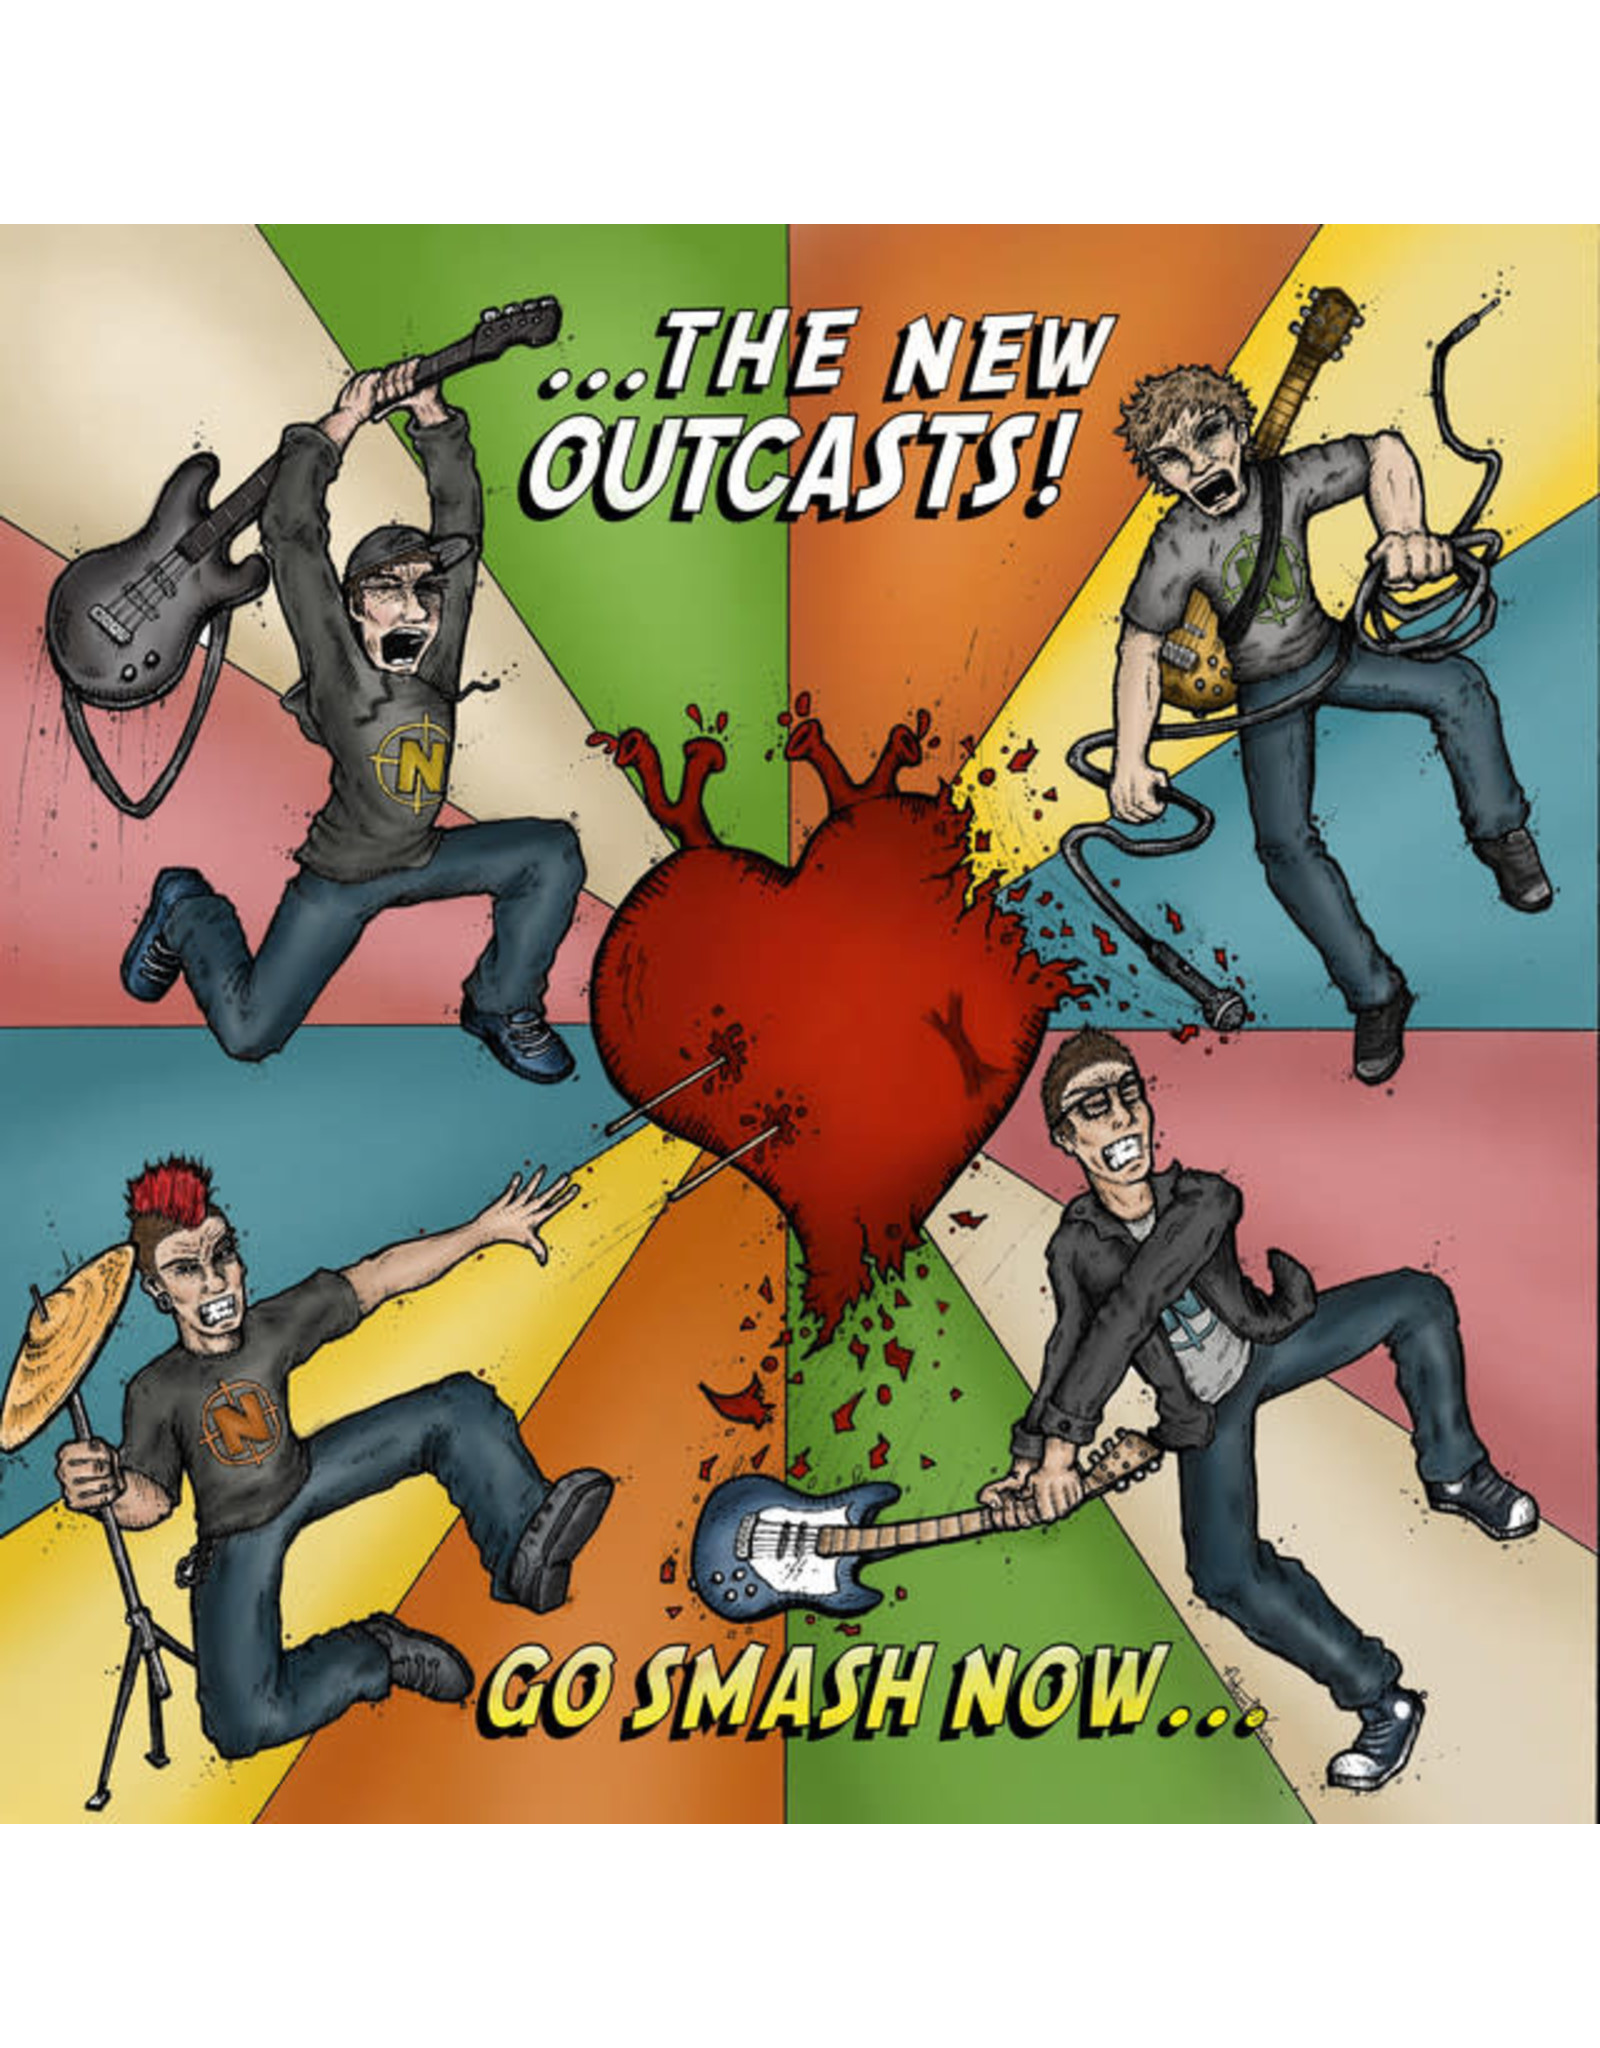 New Outcasts, The - Go Smash Now CD